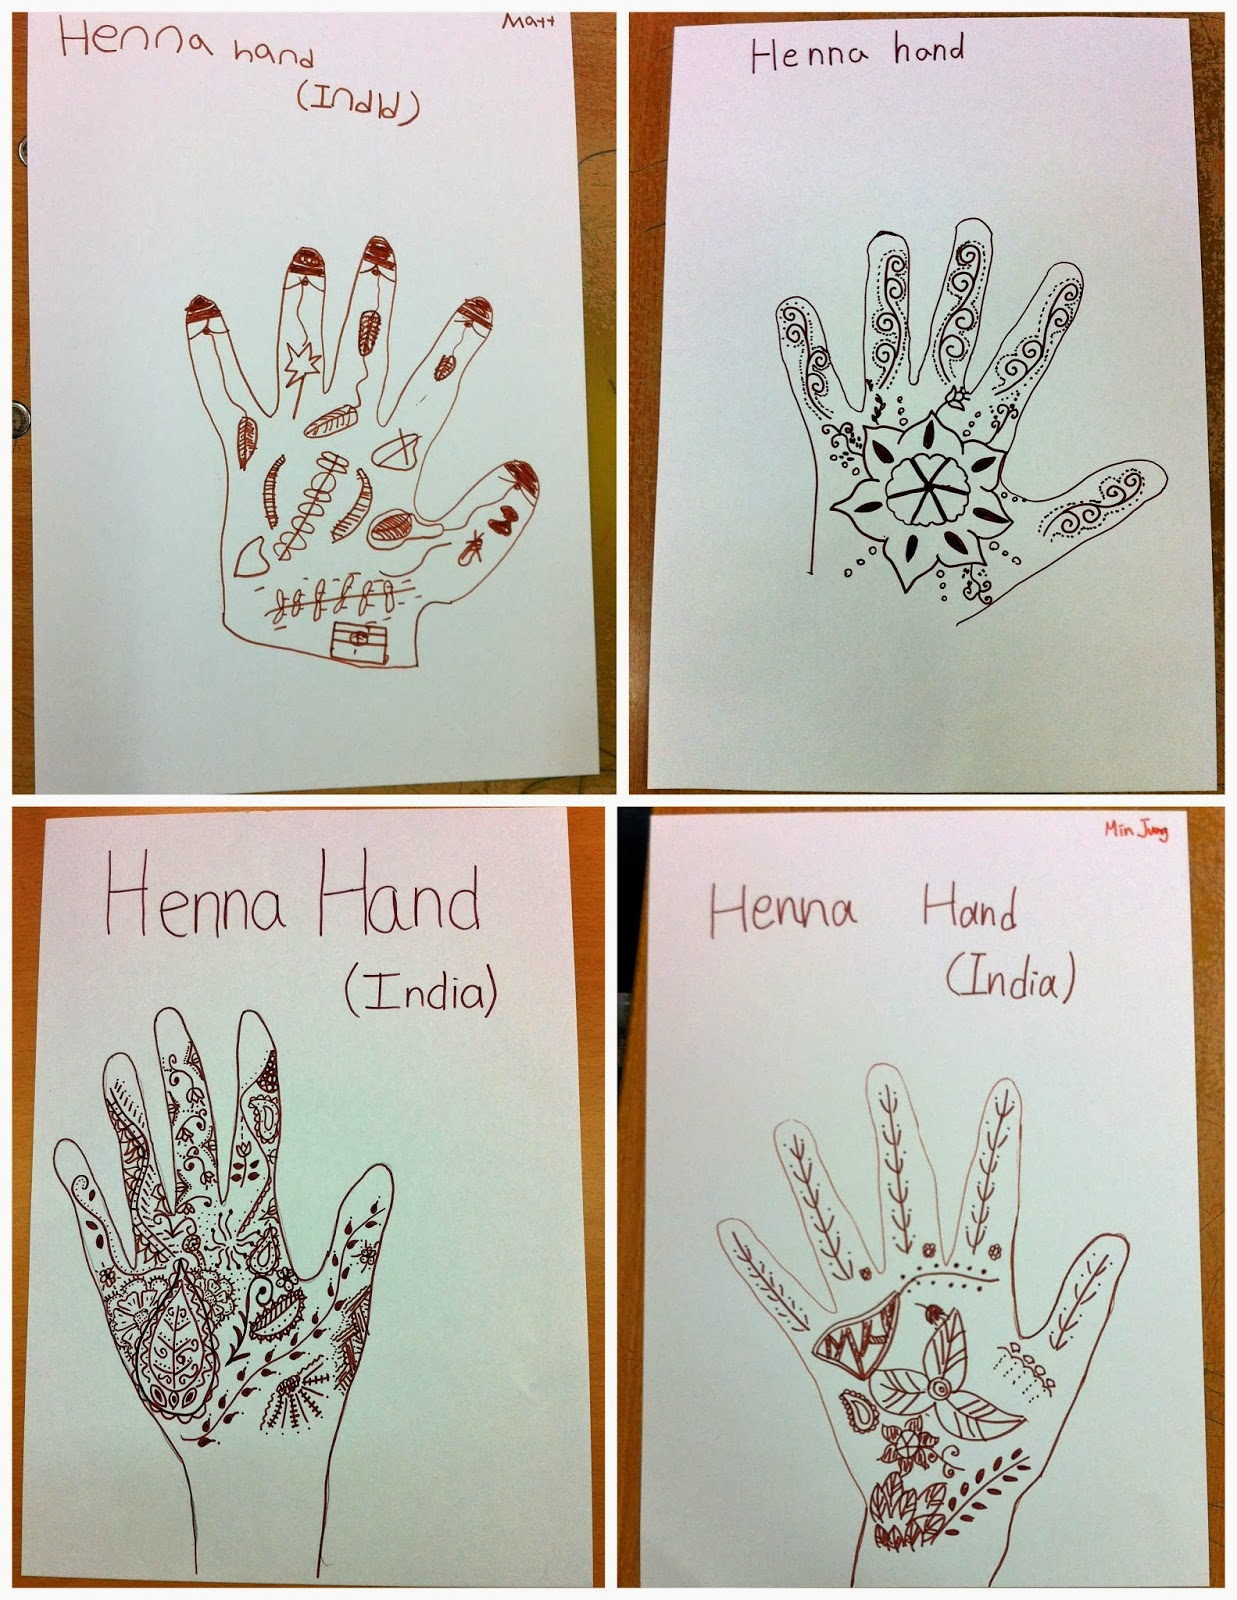 henna hands drawing elementary art project